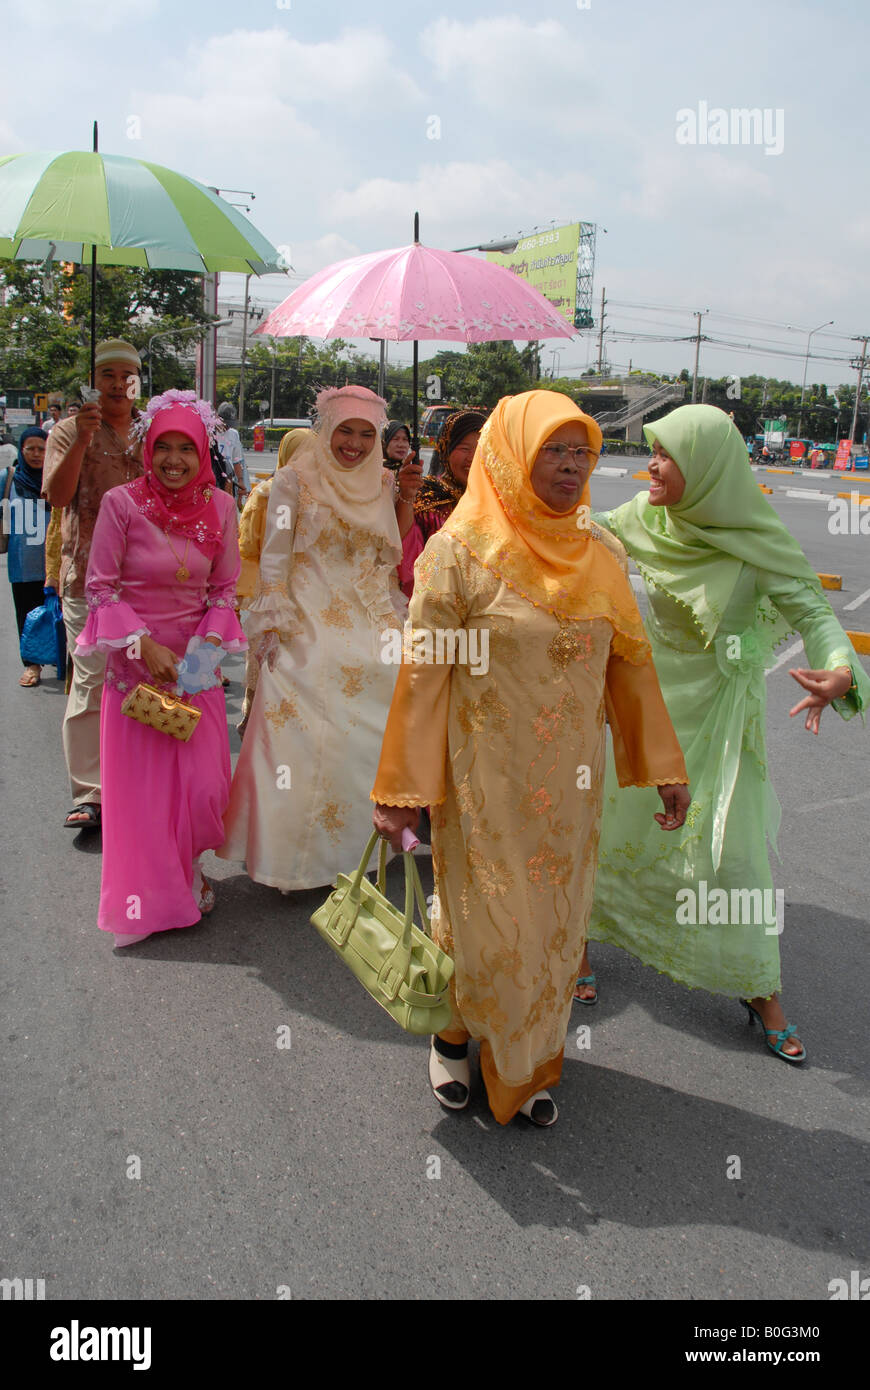 muslim bride on her way to mosque, bangkok, thailand - Stock Image